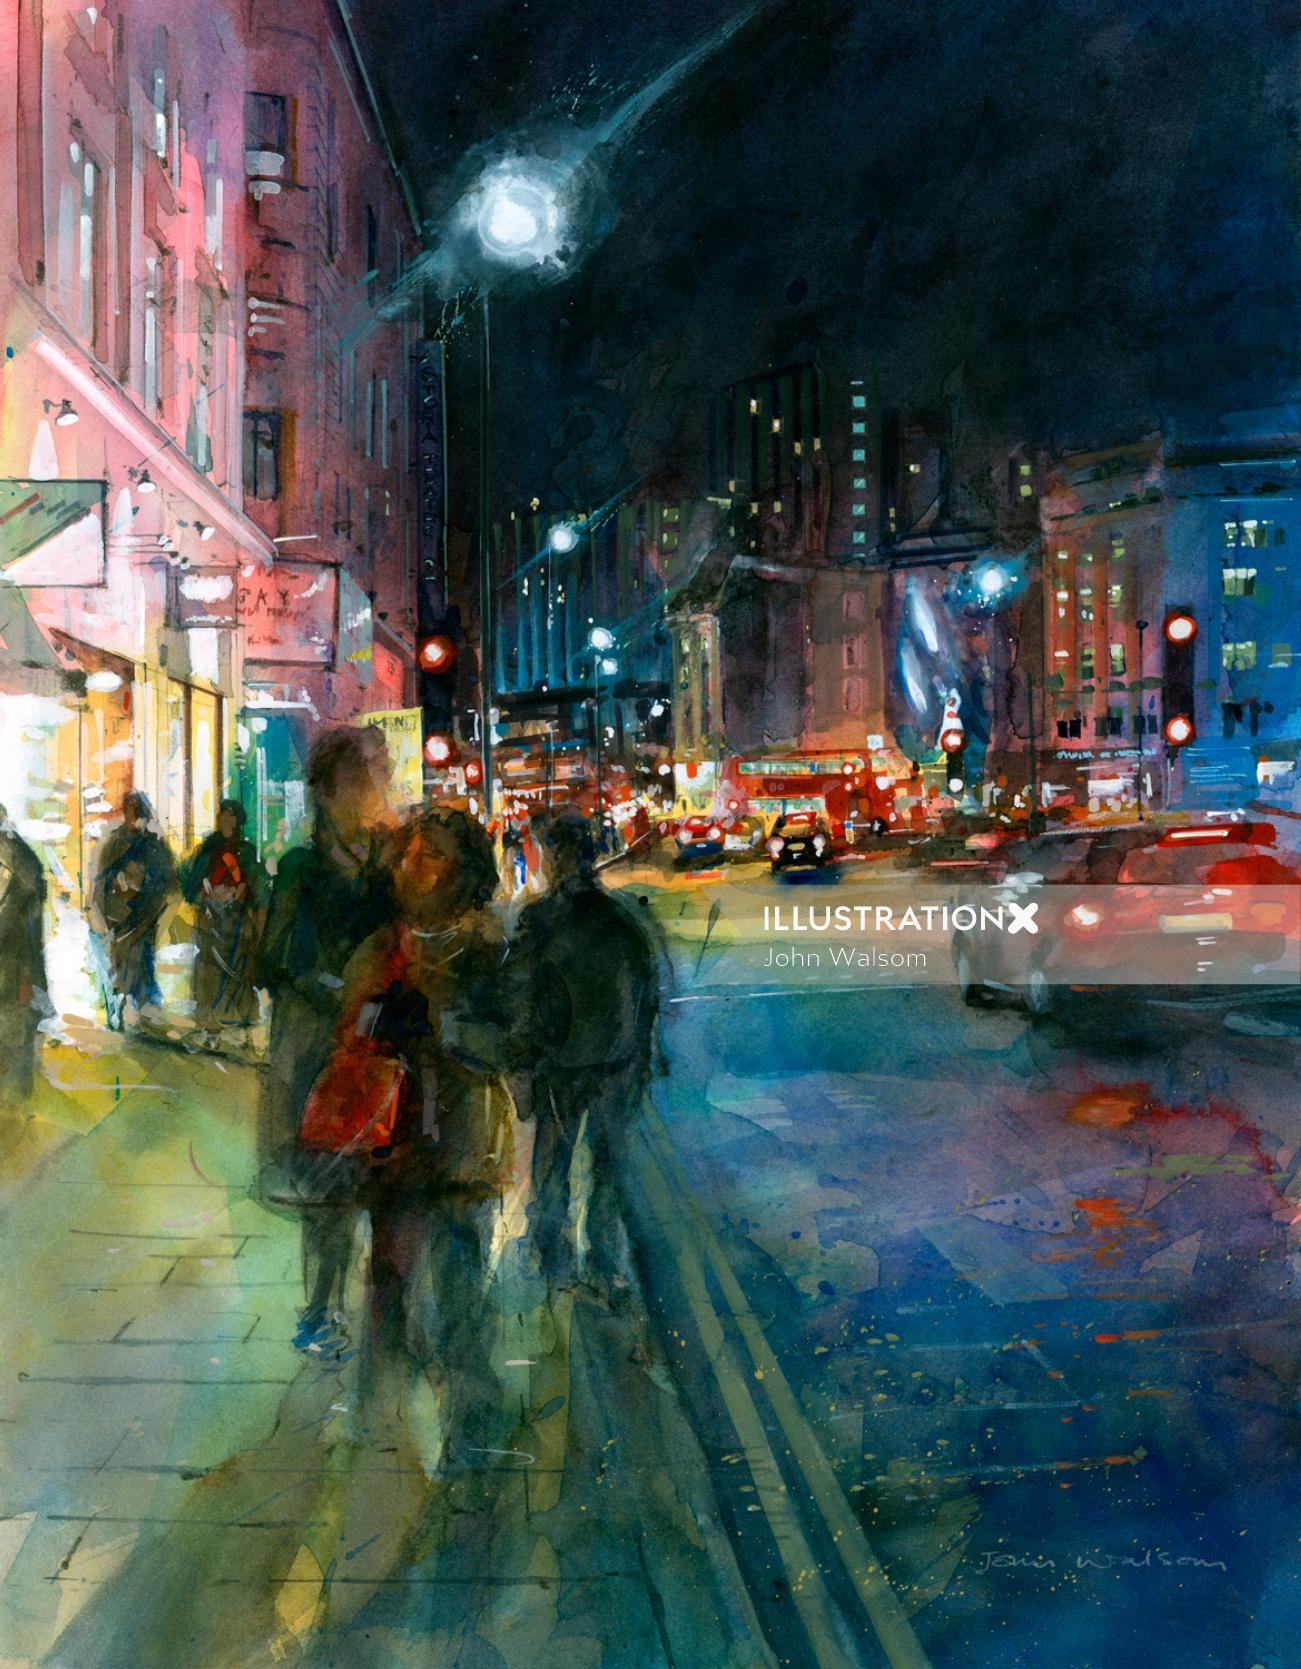 Watercolour painting of Charing Cross Road